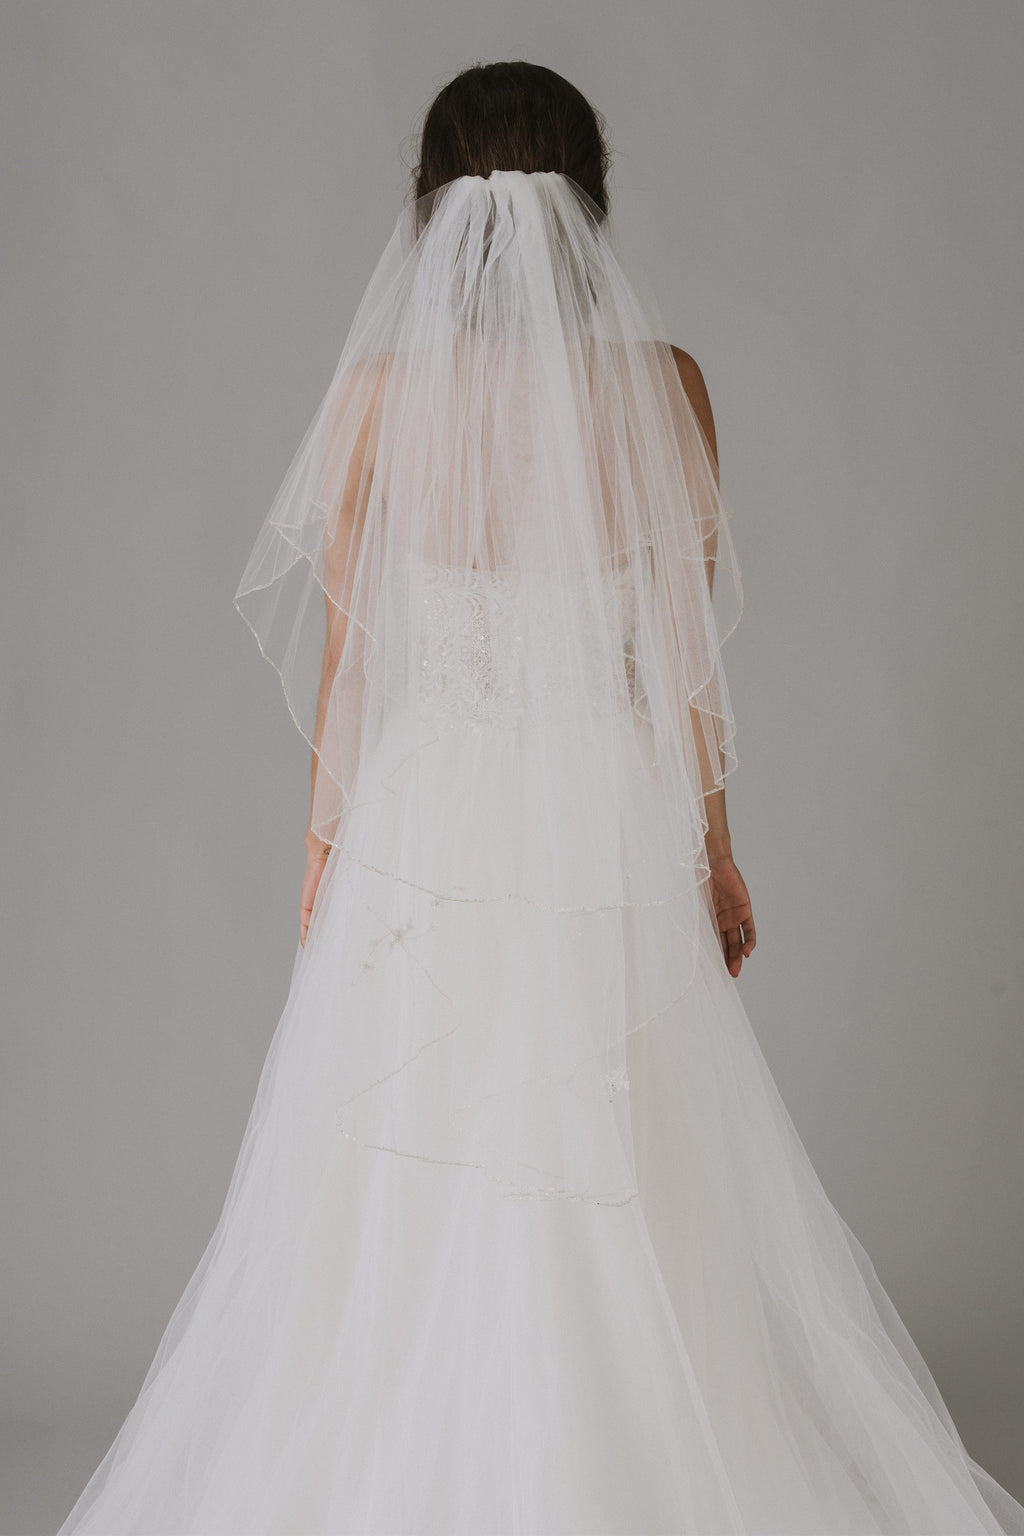 Two Tiered Veil with Beaded Metallic Edging-image